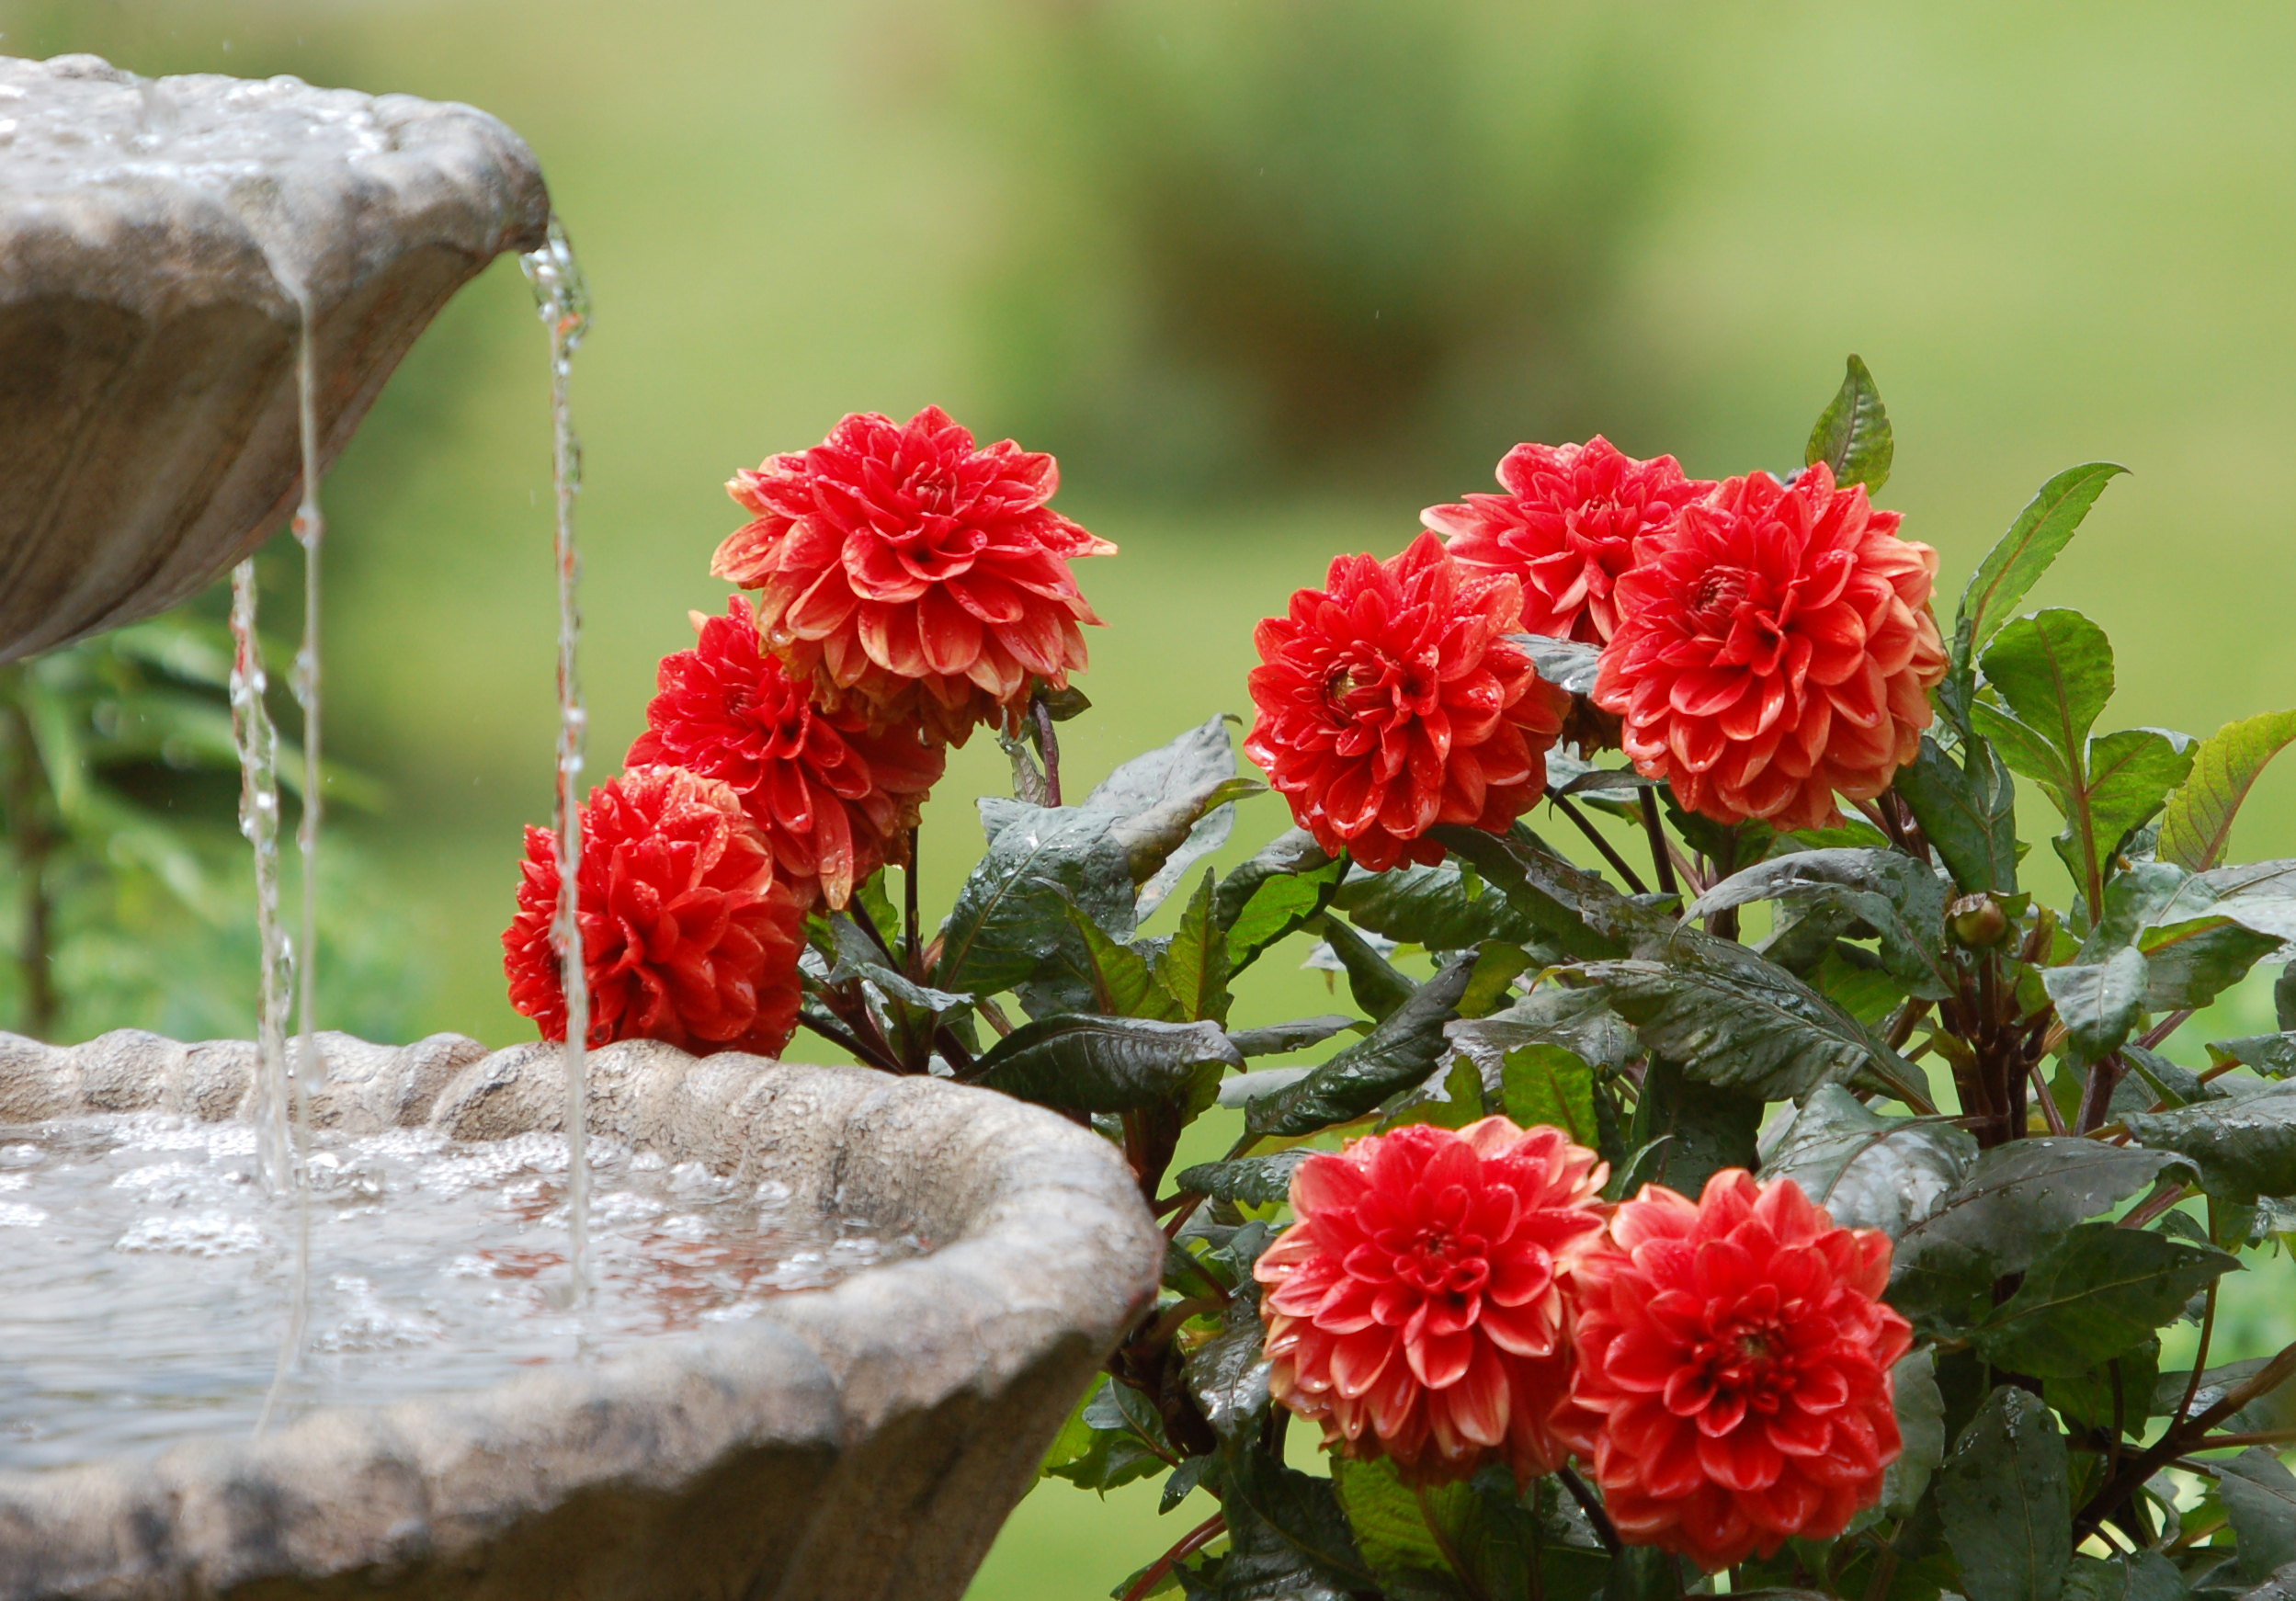 Lg Animated Wallpaper Dahlias And Water Fountain Full Hd Wallpaper And